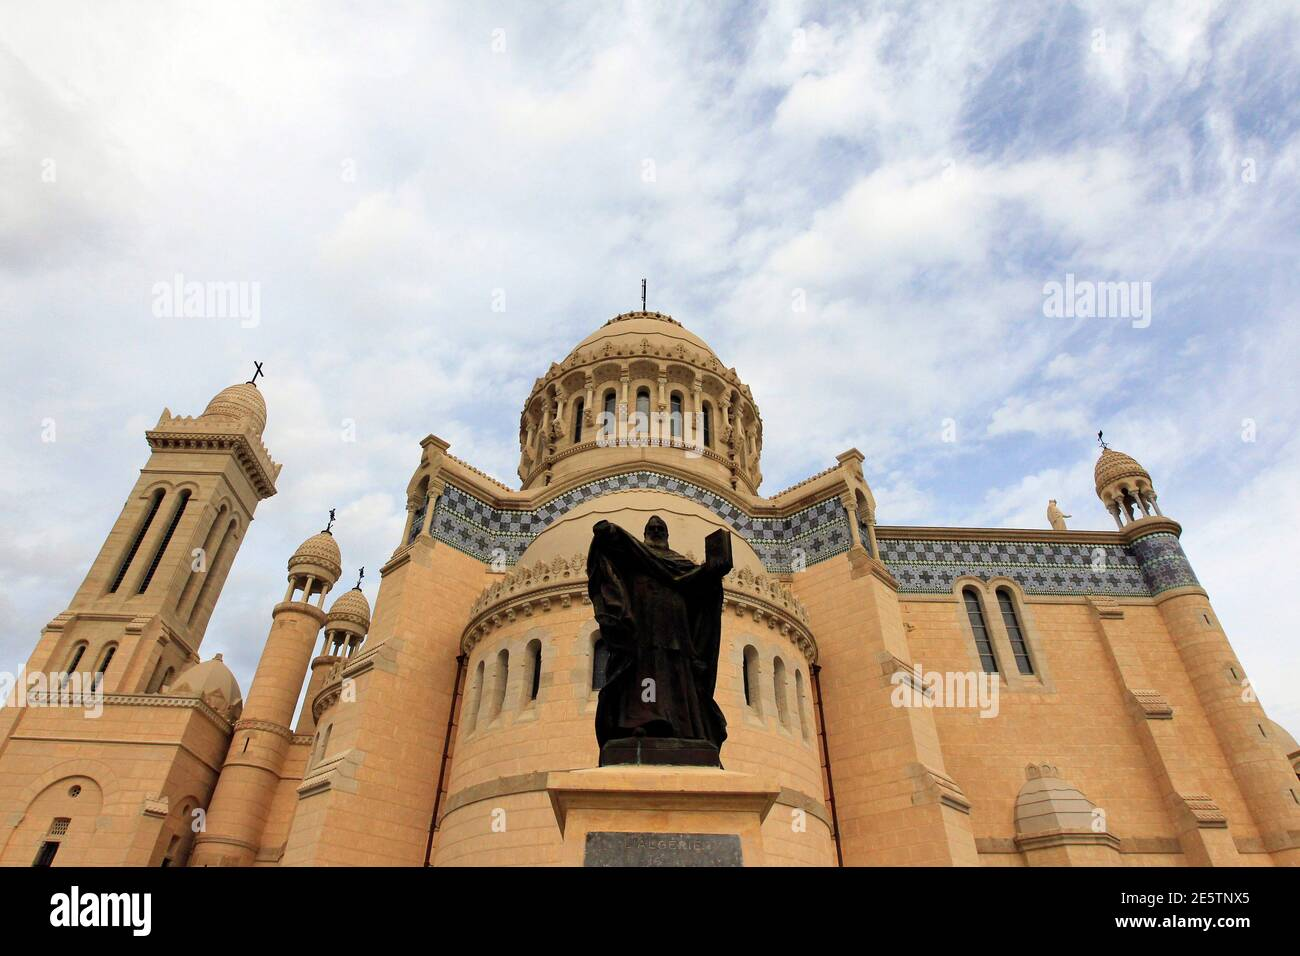 A view of the newly restored Notre Dame D'Afrique, or Our Lady of Africa, Basilica in Algiers December 13, 2010. The basilica was officially re-opened on Monday after a four-year restoration project that was partially funded by the European Union. The church, which stands on a promontory overlooking the Mediterranean Sea, was built during French colonial rule in Algeria .REUTERS/Zohra Bensemra (ALGERIA - Tags: RELIGION SOCIETY) Stock Photo